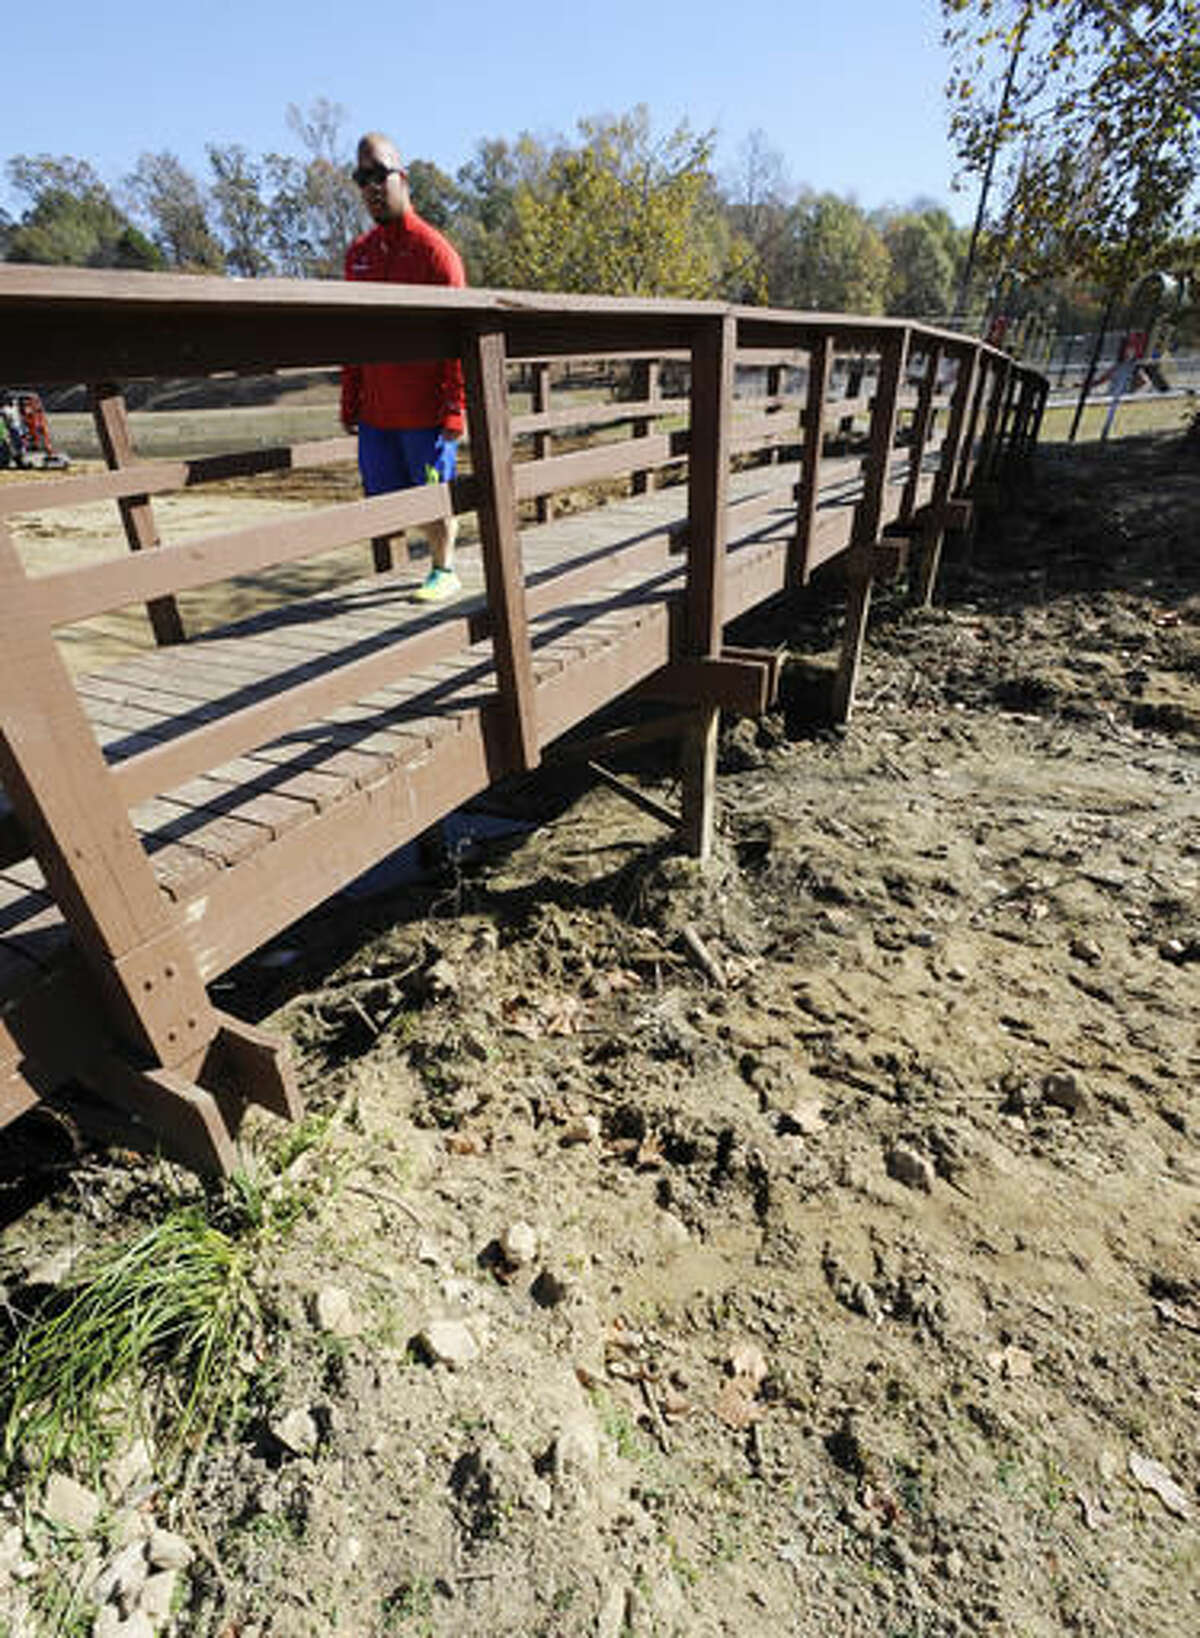 Chris Smith walks over a pond dried up by a worsening drought in Helena, Ala., on Thursday, Nov. 17, 2016. Federal statistics show nearly 90 percent of the state is now in a severe drought. And the U.S. Drought Monitor shows 65 percent of the state is in an extreme or exceptional drought. (AP Photo/Jay Reeves)